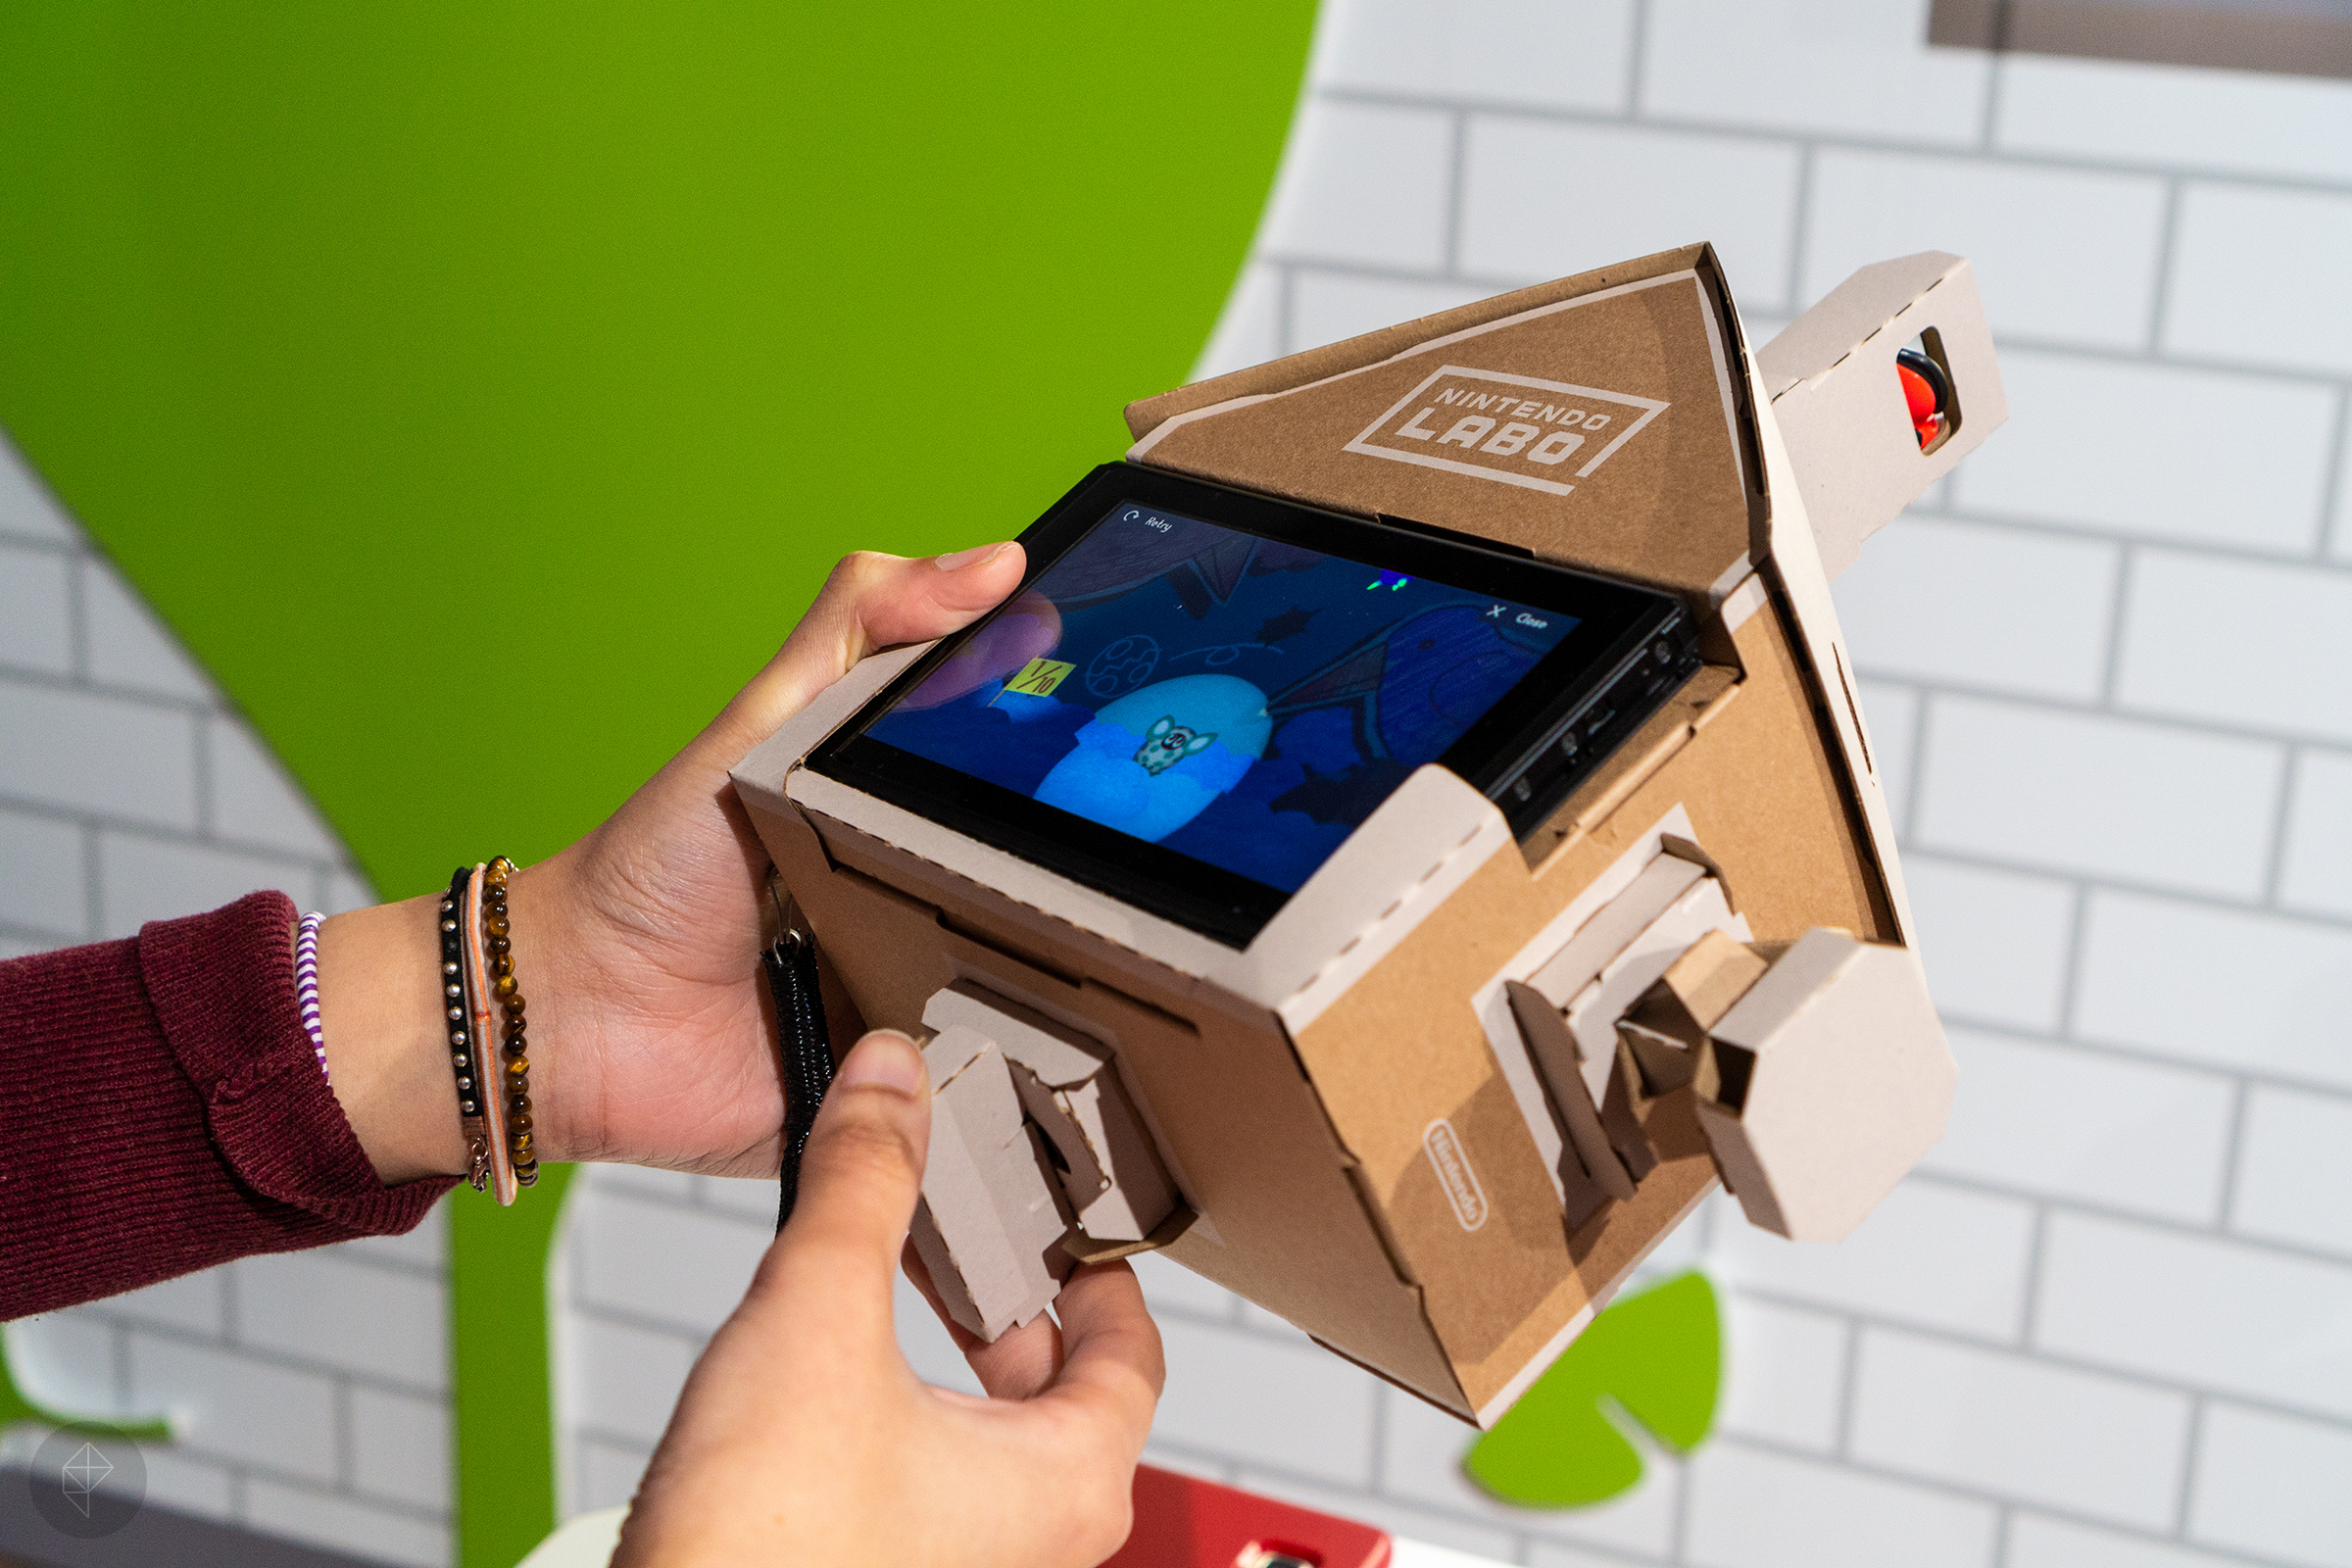 Nintendo Labo - Allegra playing with the house